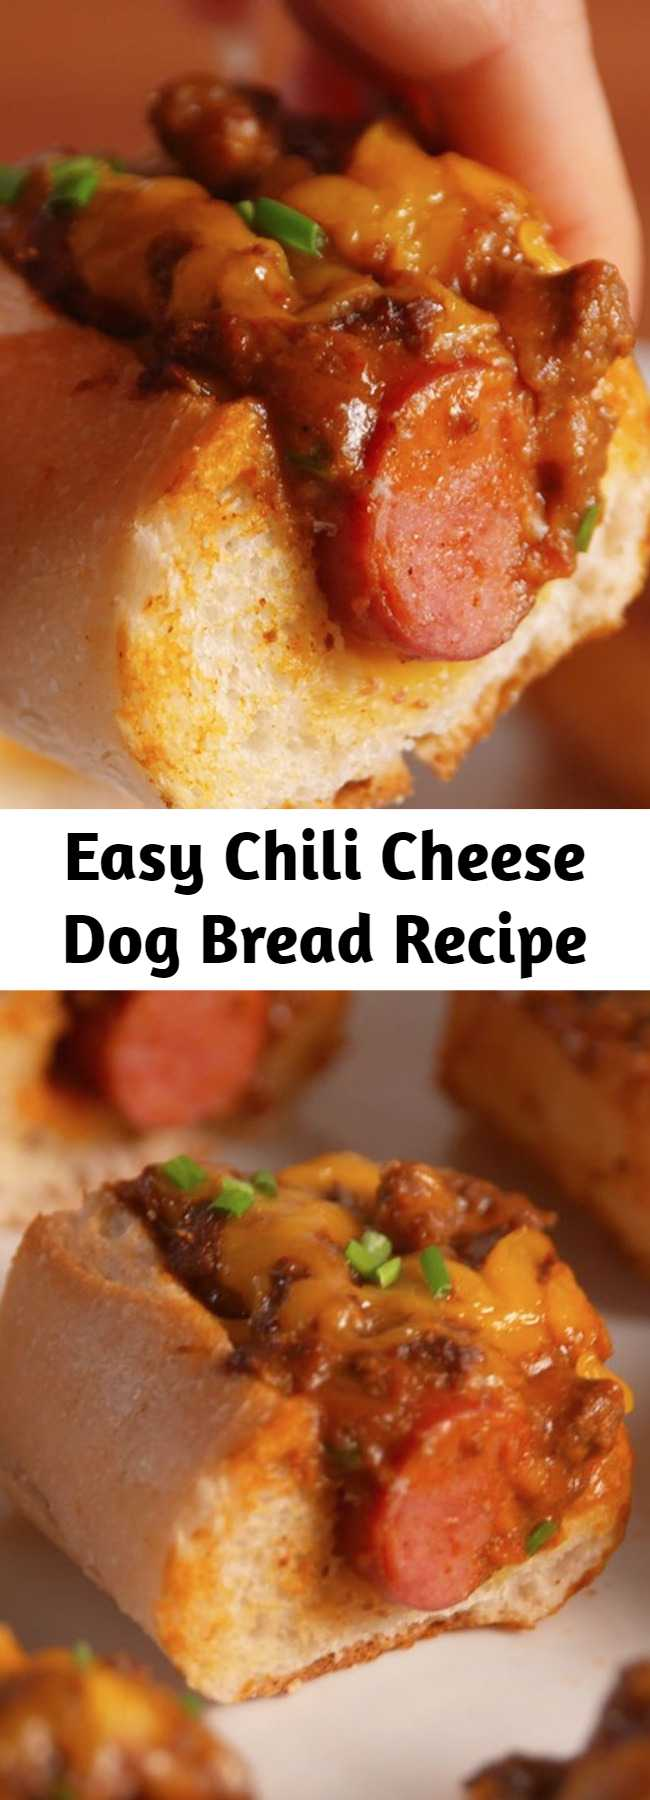 Easy Chili Cheese Dog Bread Recipe - Everyone's your BFF when you bring these to the party. This recipe will make you forget everything you thought you knew about chili cheese dogs. We're pretty confident this'll be gobbled right up.